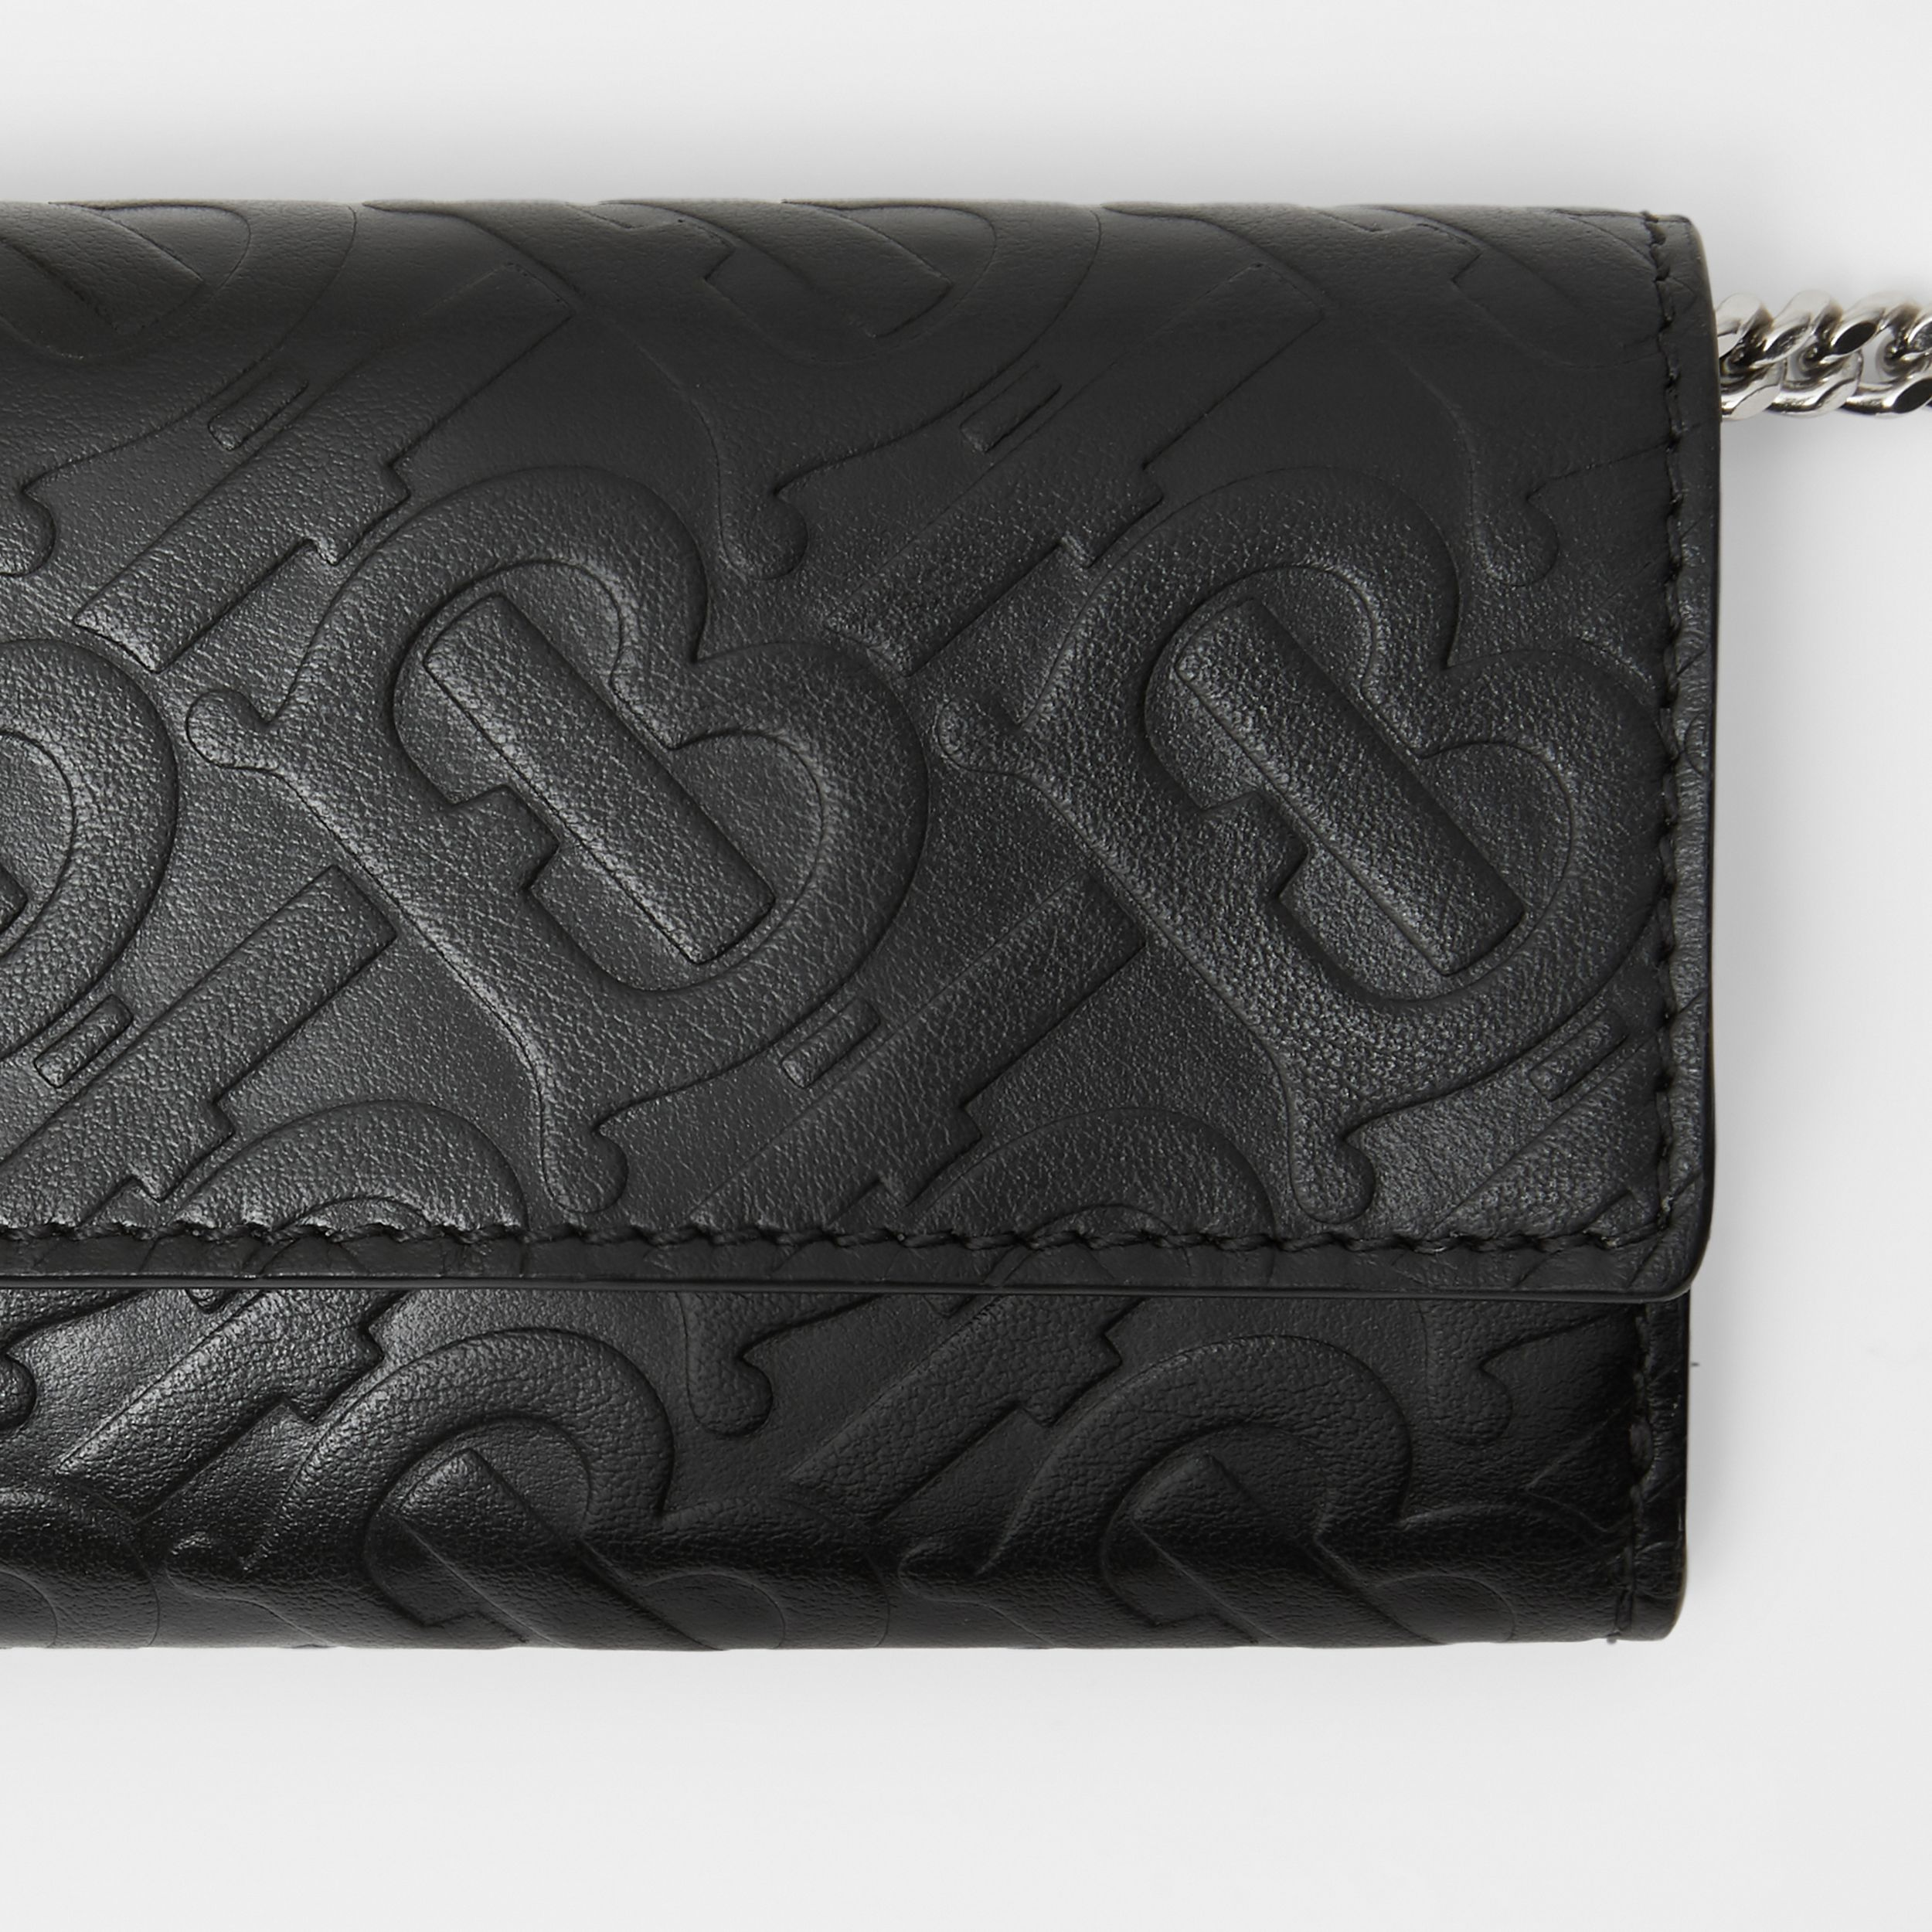 Small Monogram Leather Wallet with Detachable Strap in Black | Burberry - 2